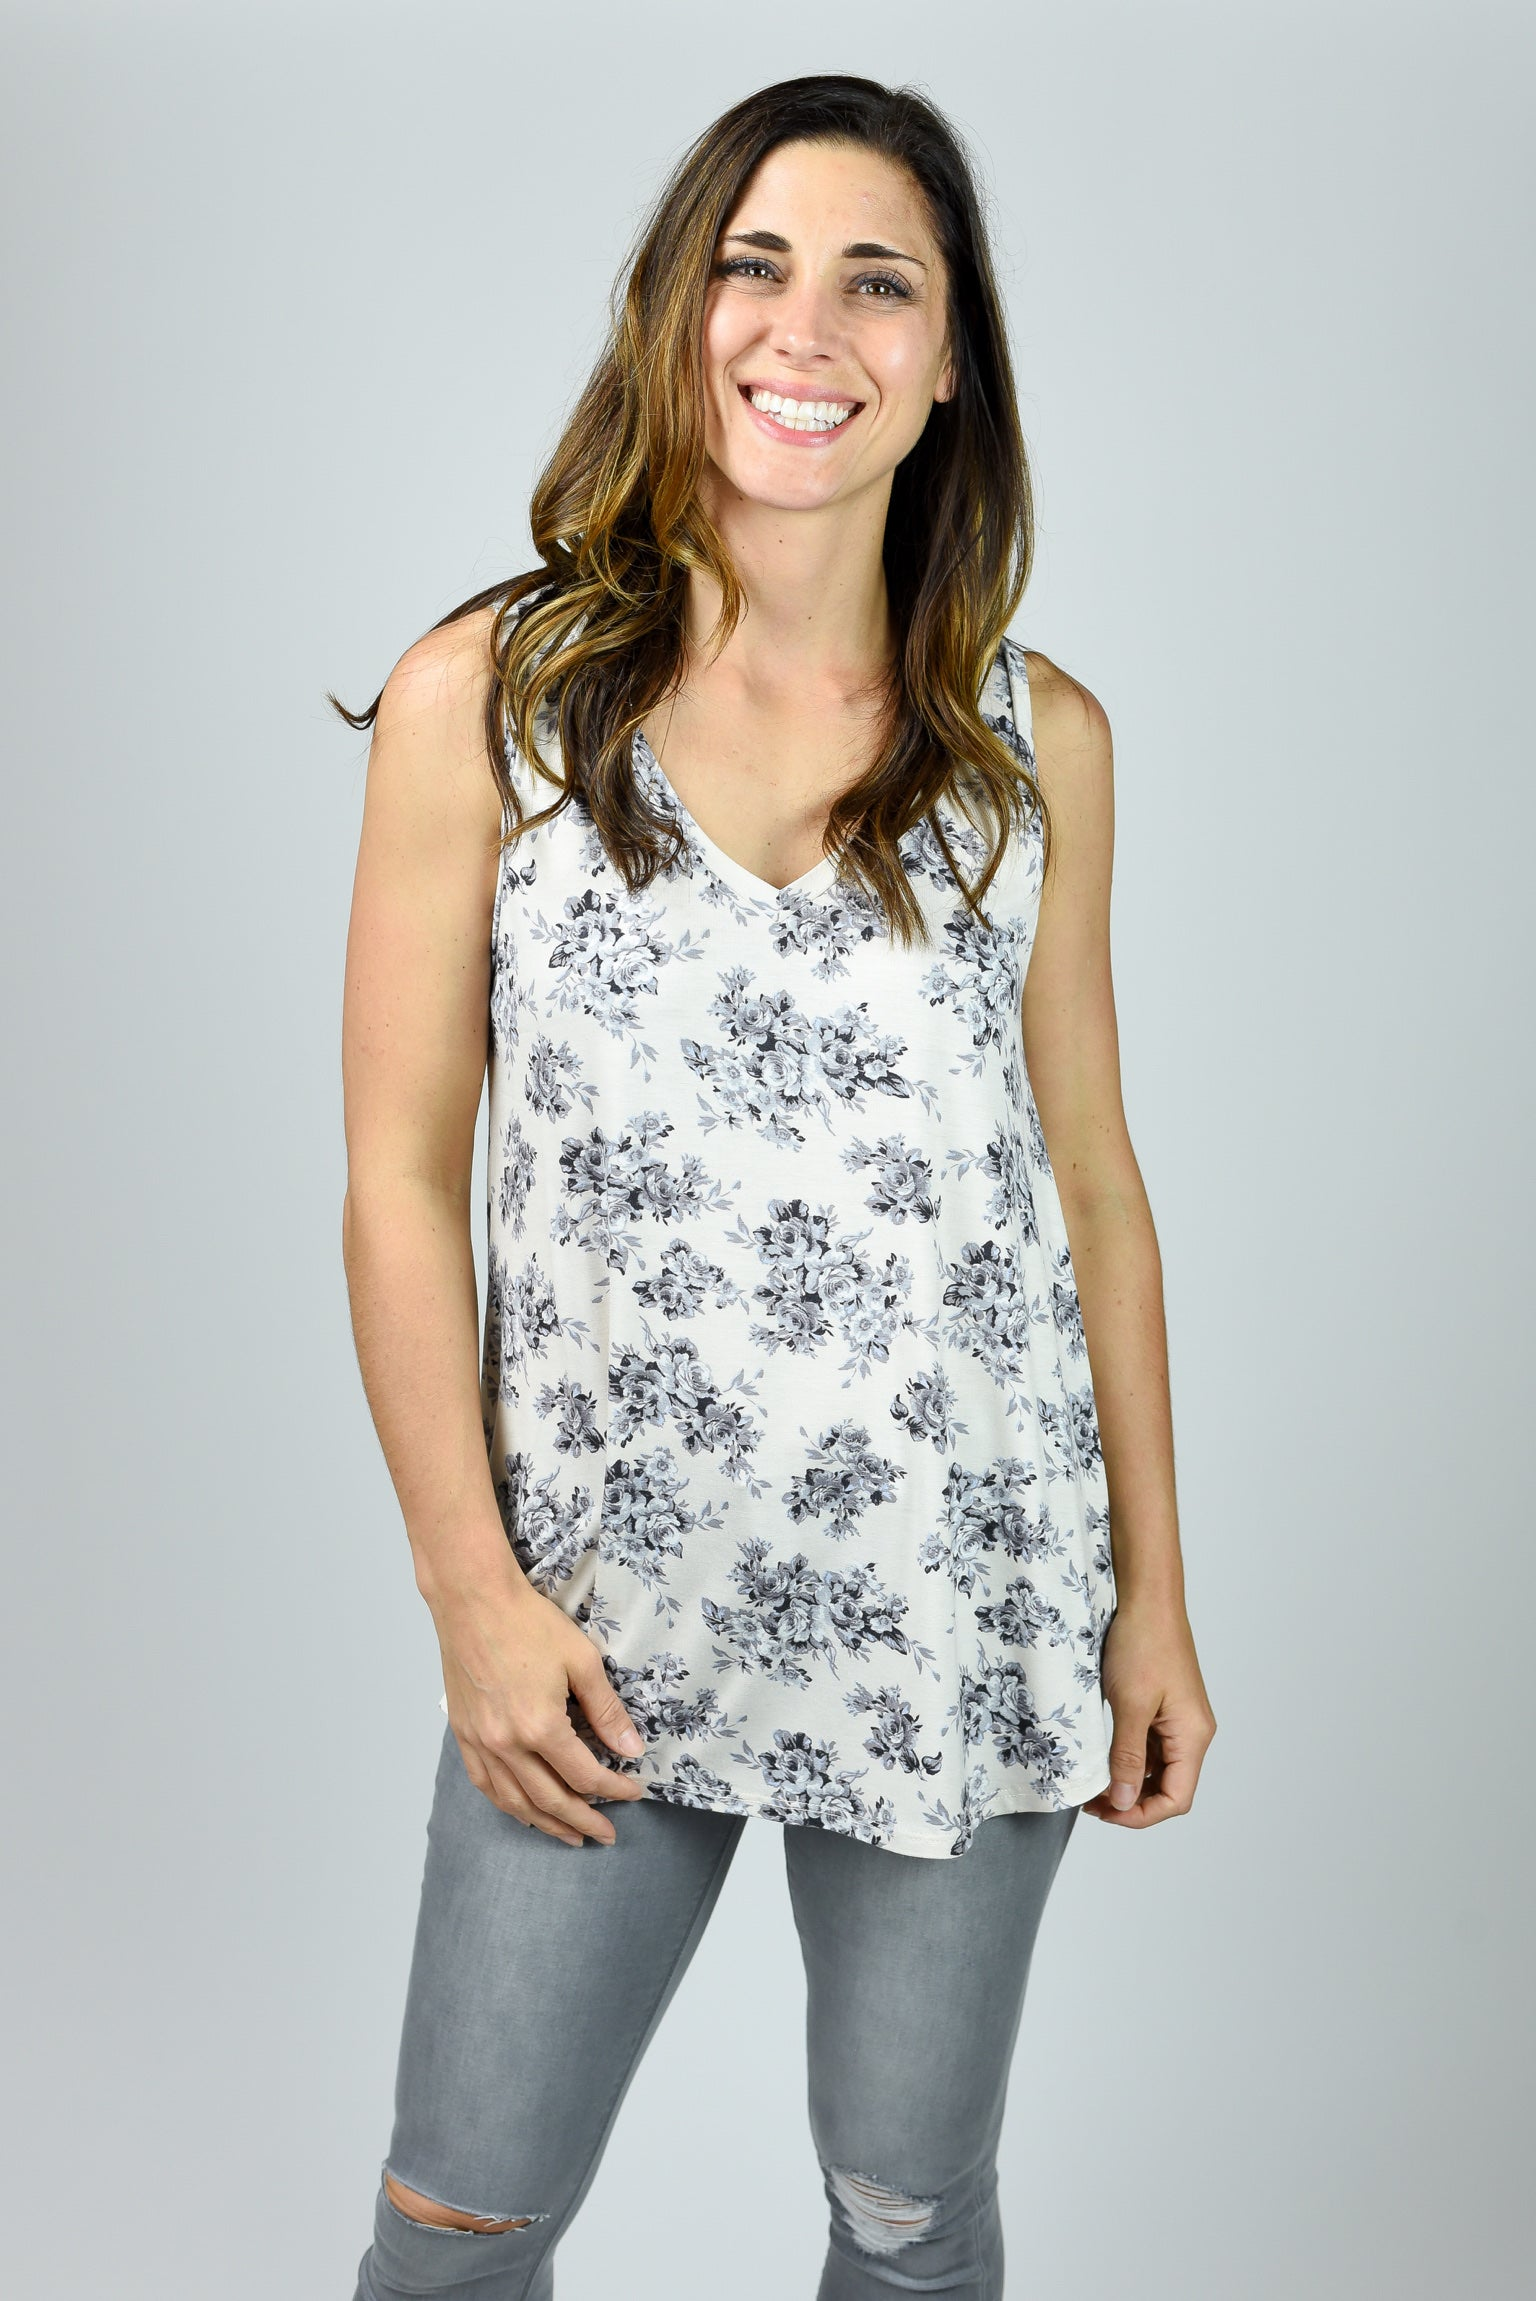 Gimme Three Steps Floral Vneck Tank